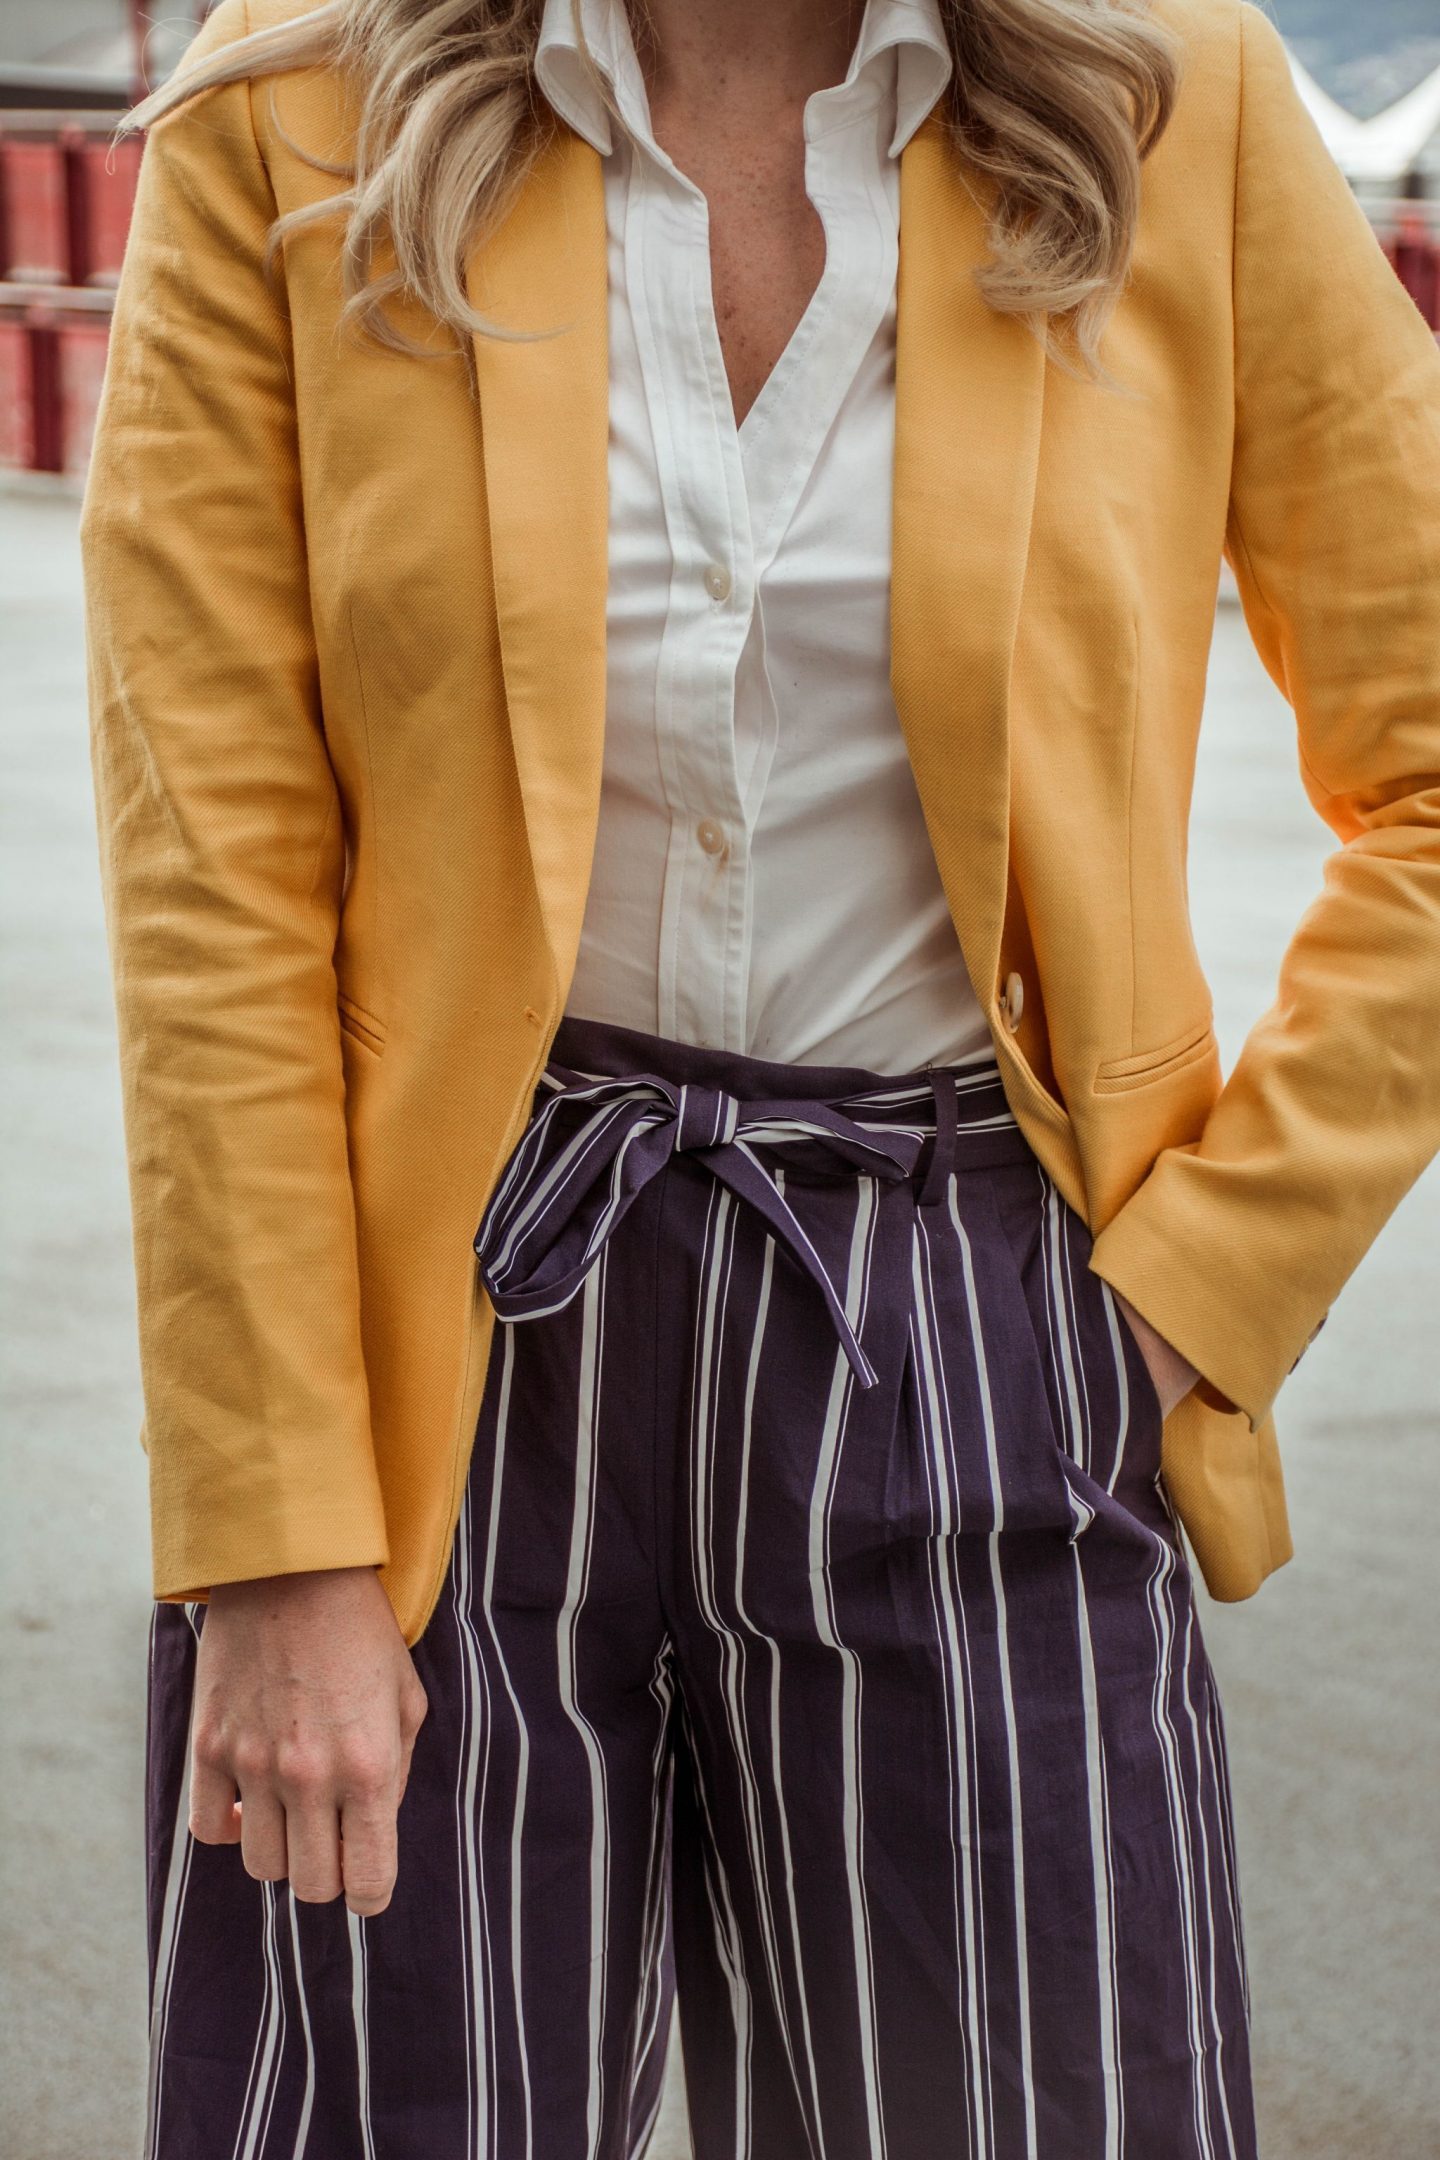 what to wear with a yellow blazer